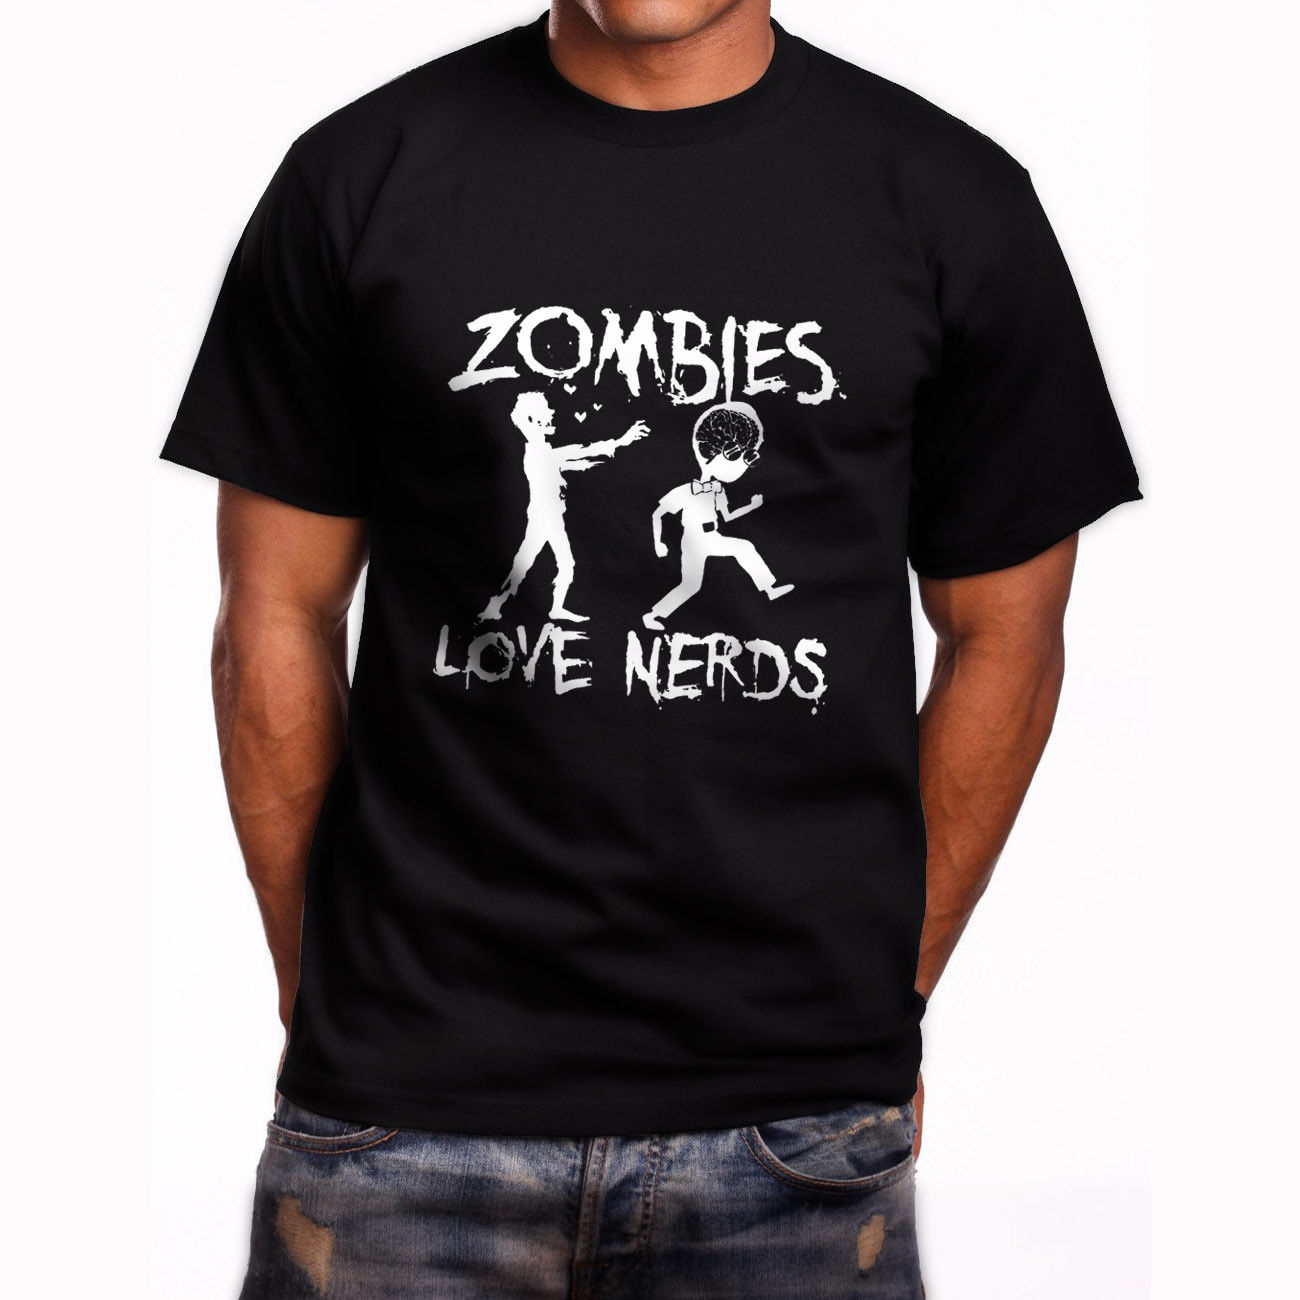 New Zombies Love Nerds Graphic Short Sleeve Men's Black T-Shirt Size S To 3xl Mens Tops Cool O Neck T Shirt Top Tee